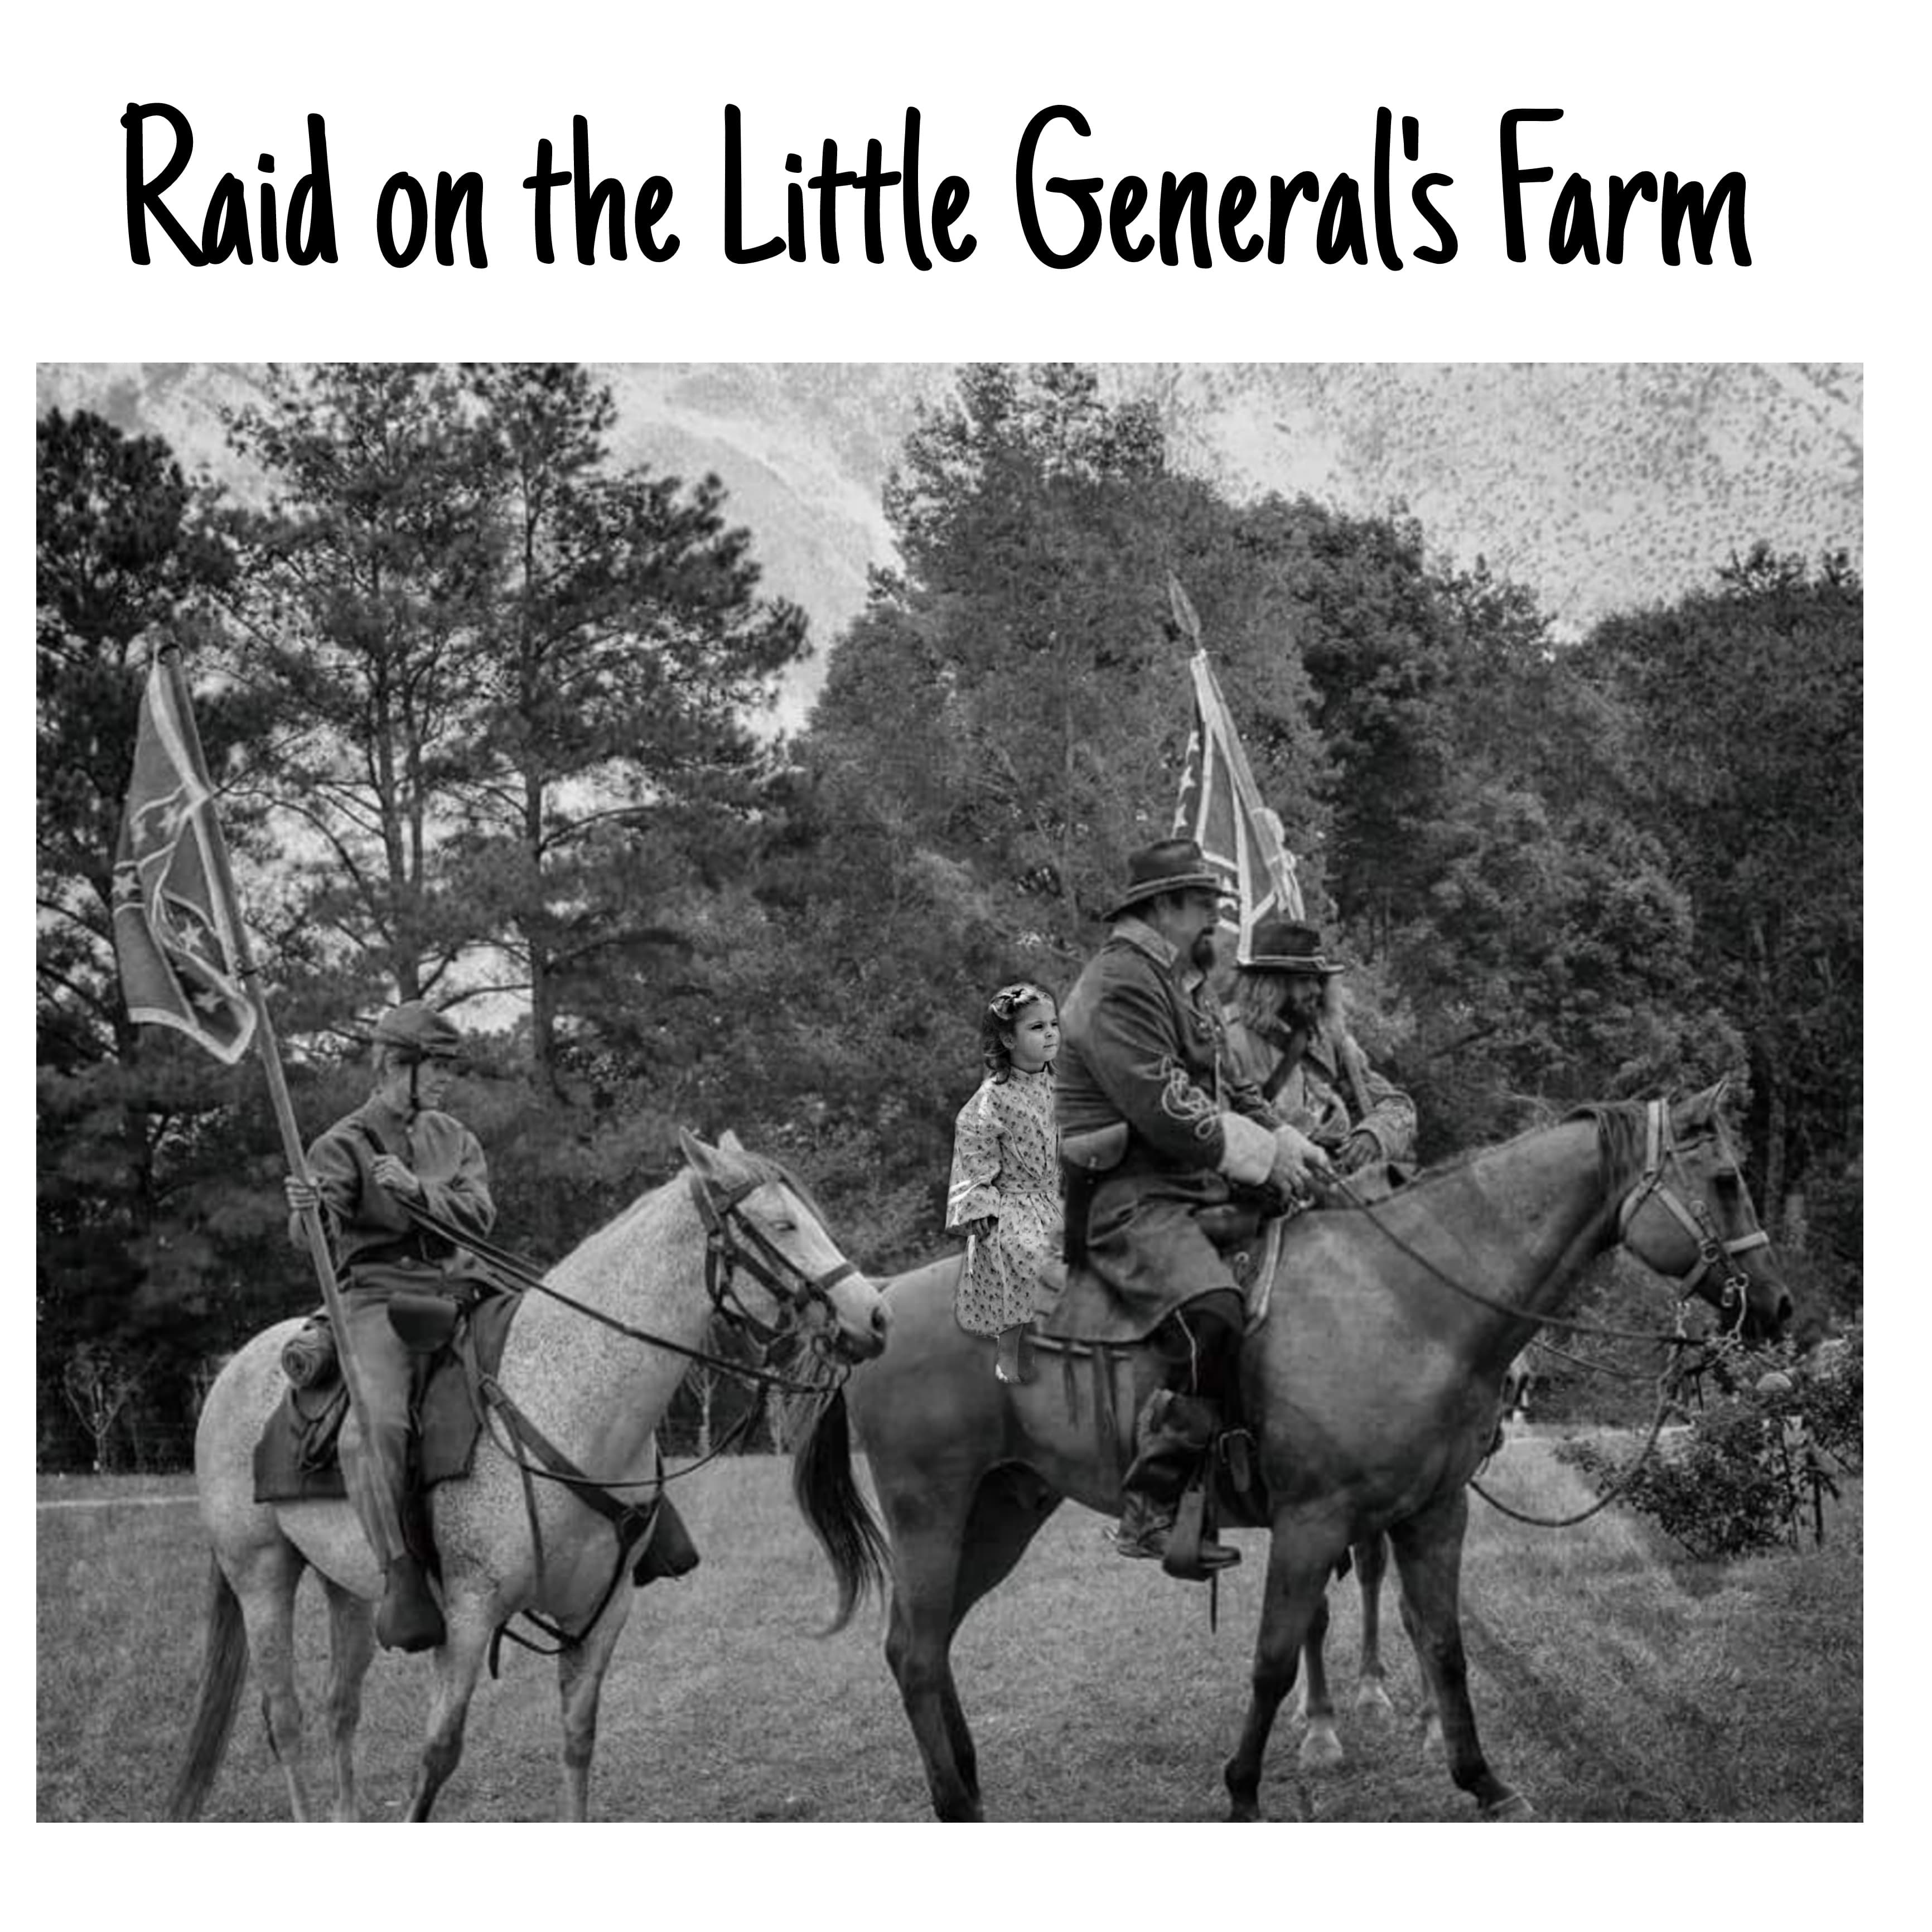 Raid on the Little General's Farm